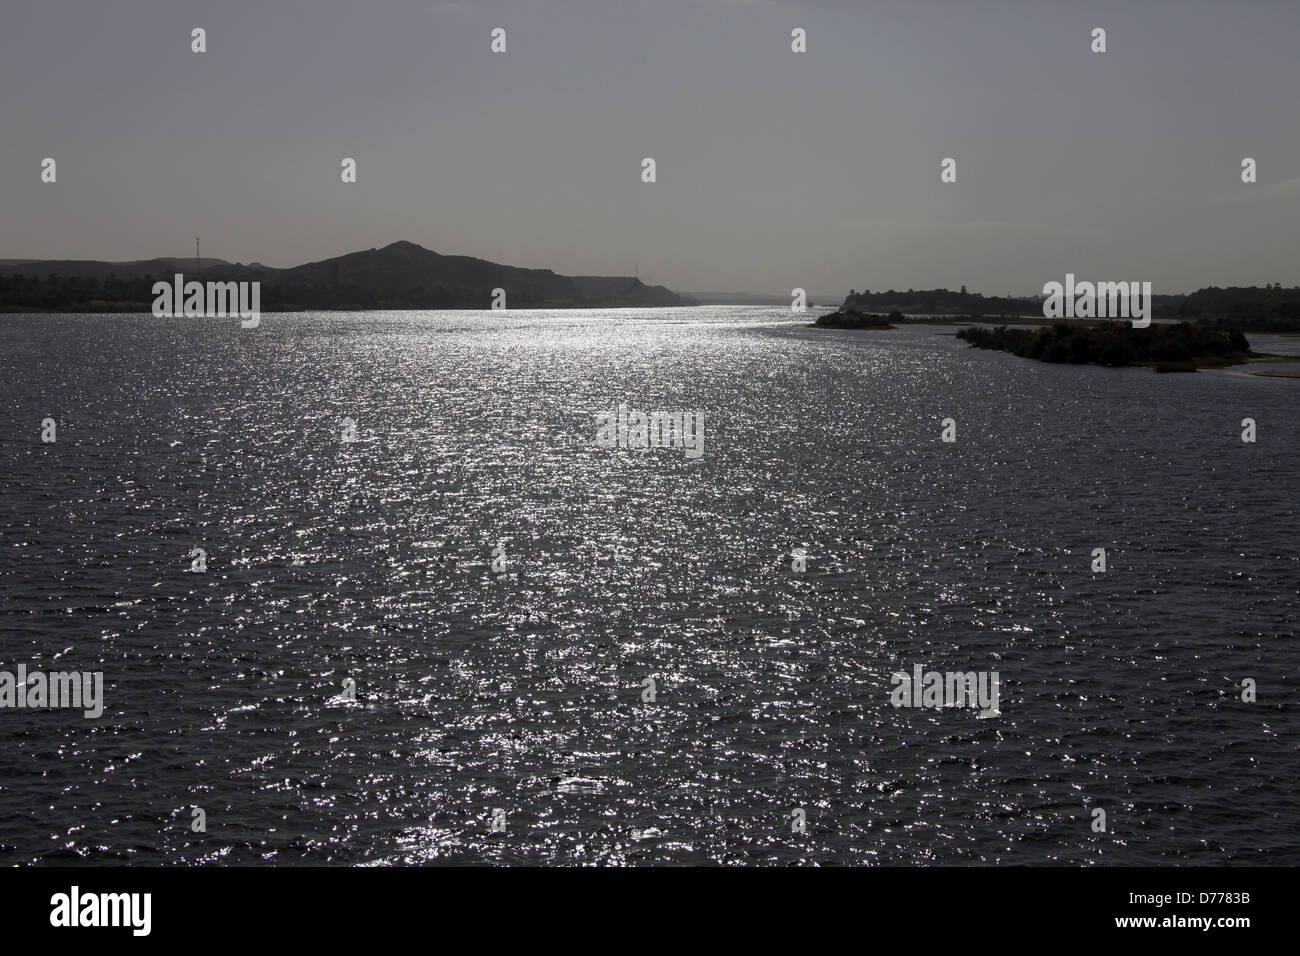 BACKLIT SPARKLING WATER RIVER NILE EGYPT 09 January 2013 - Stock Image